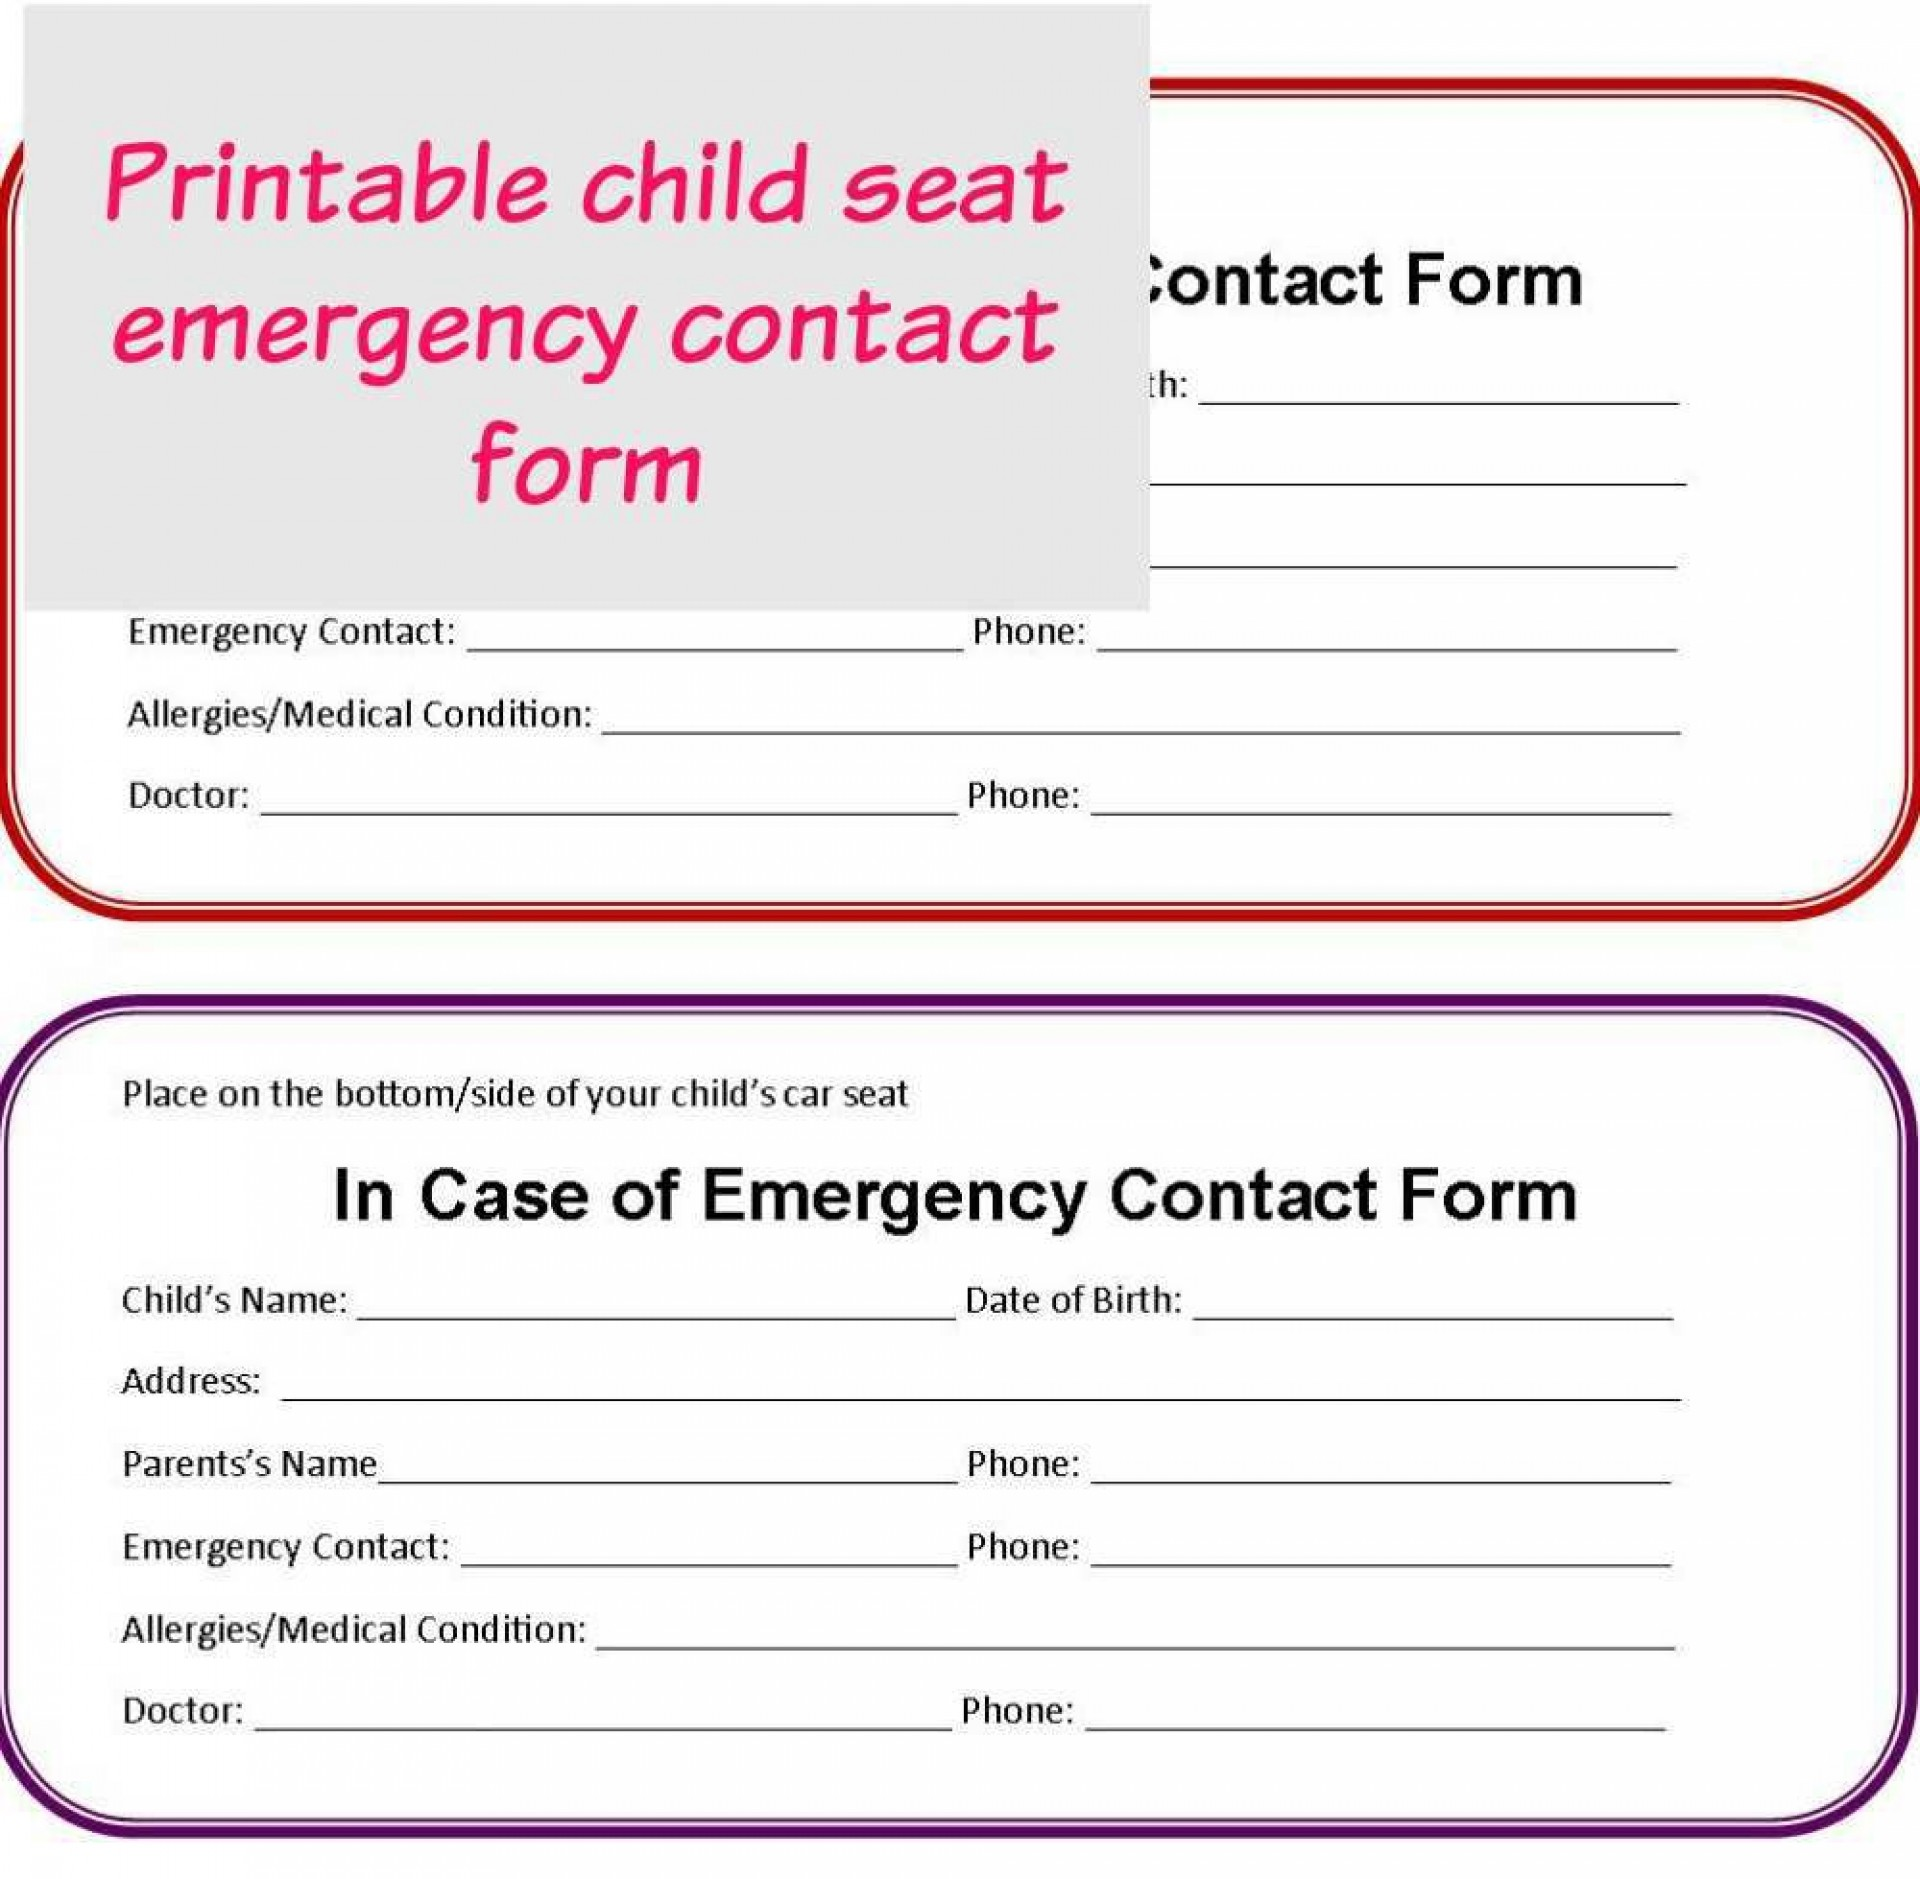 004 Magnificent Free Emergency Contact Card Template Uk Image 1920